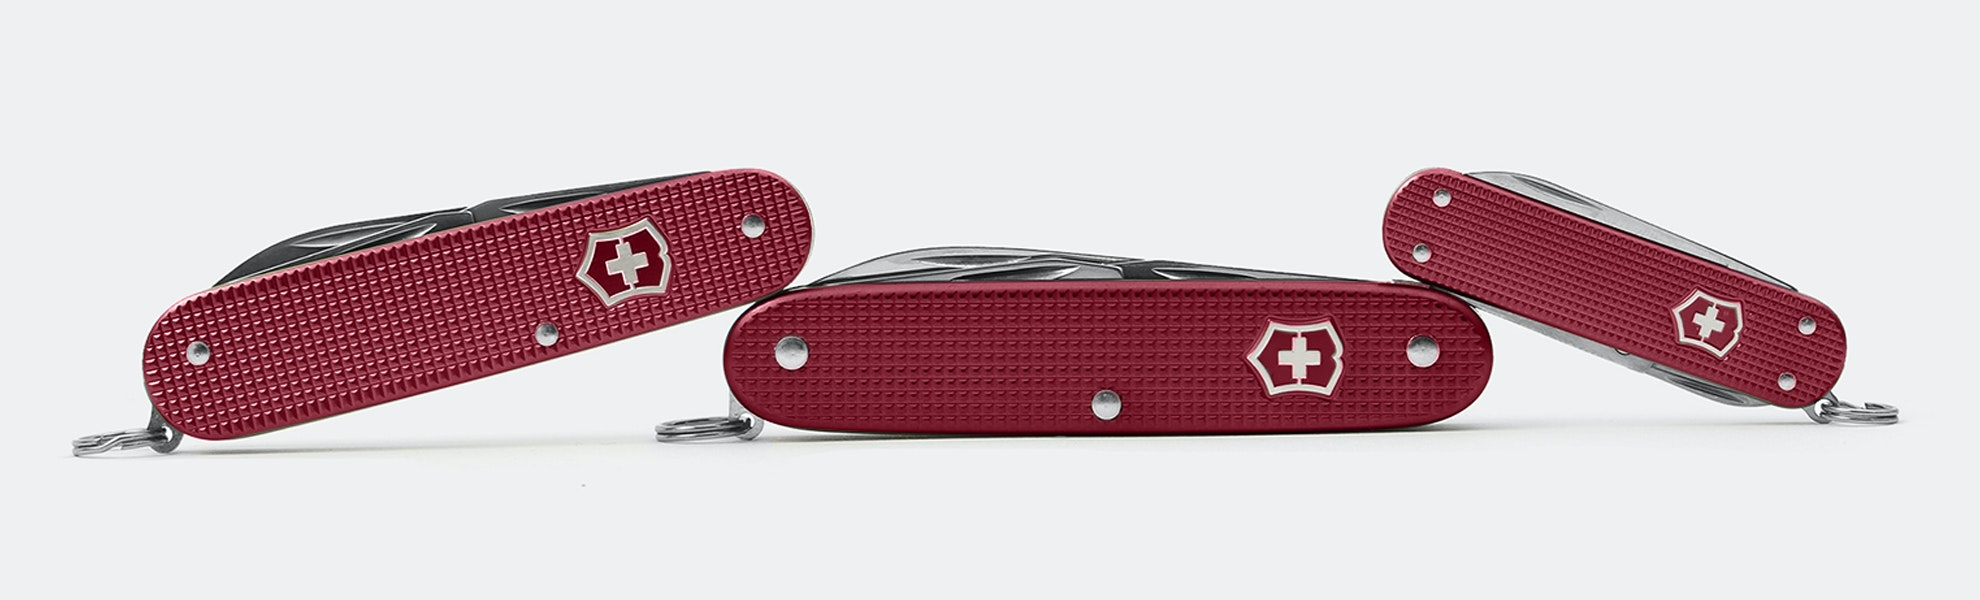 Limited-Edition Victorinox Alox Knives: Berry Red